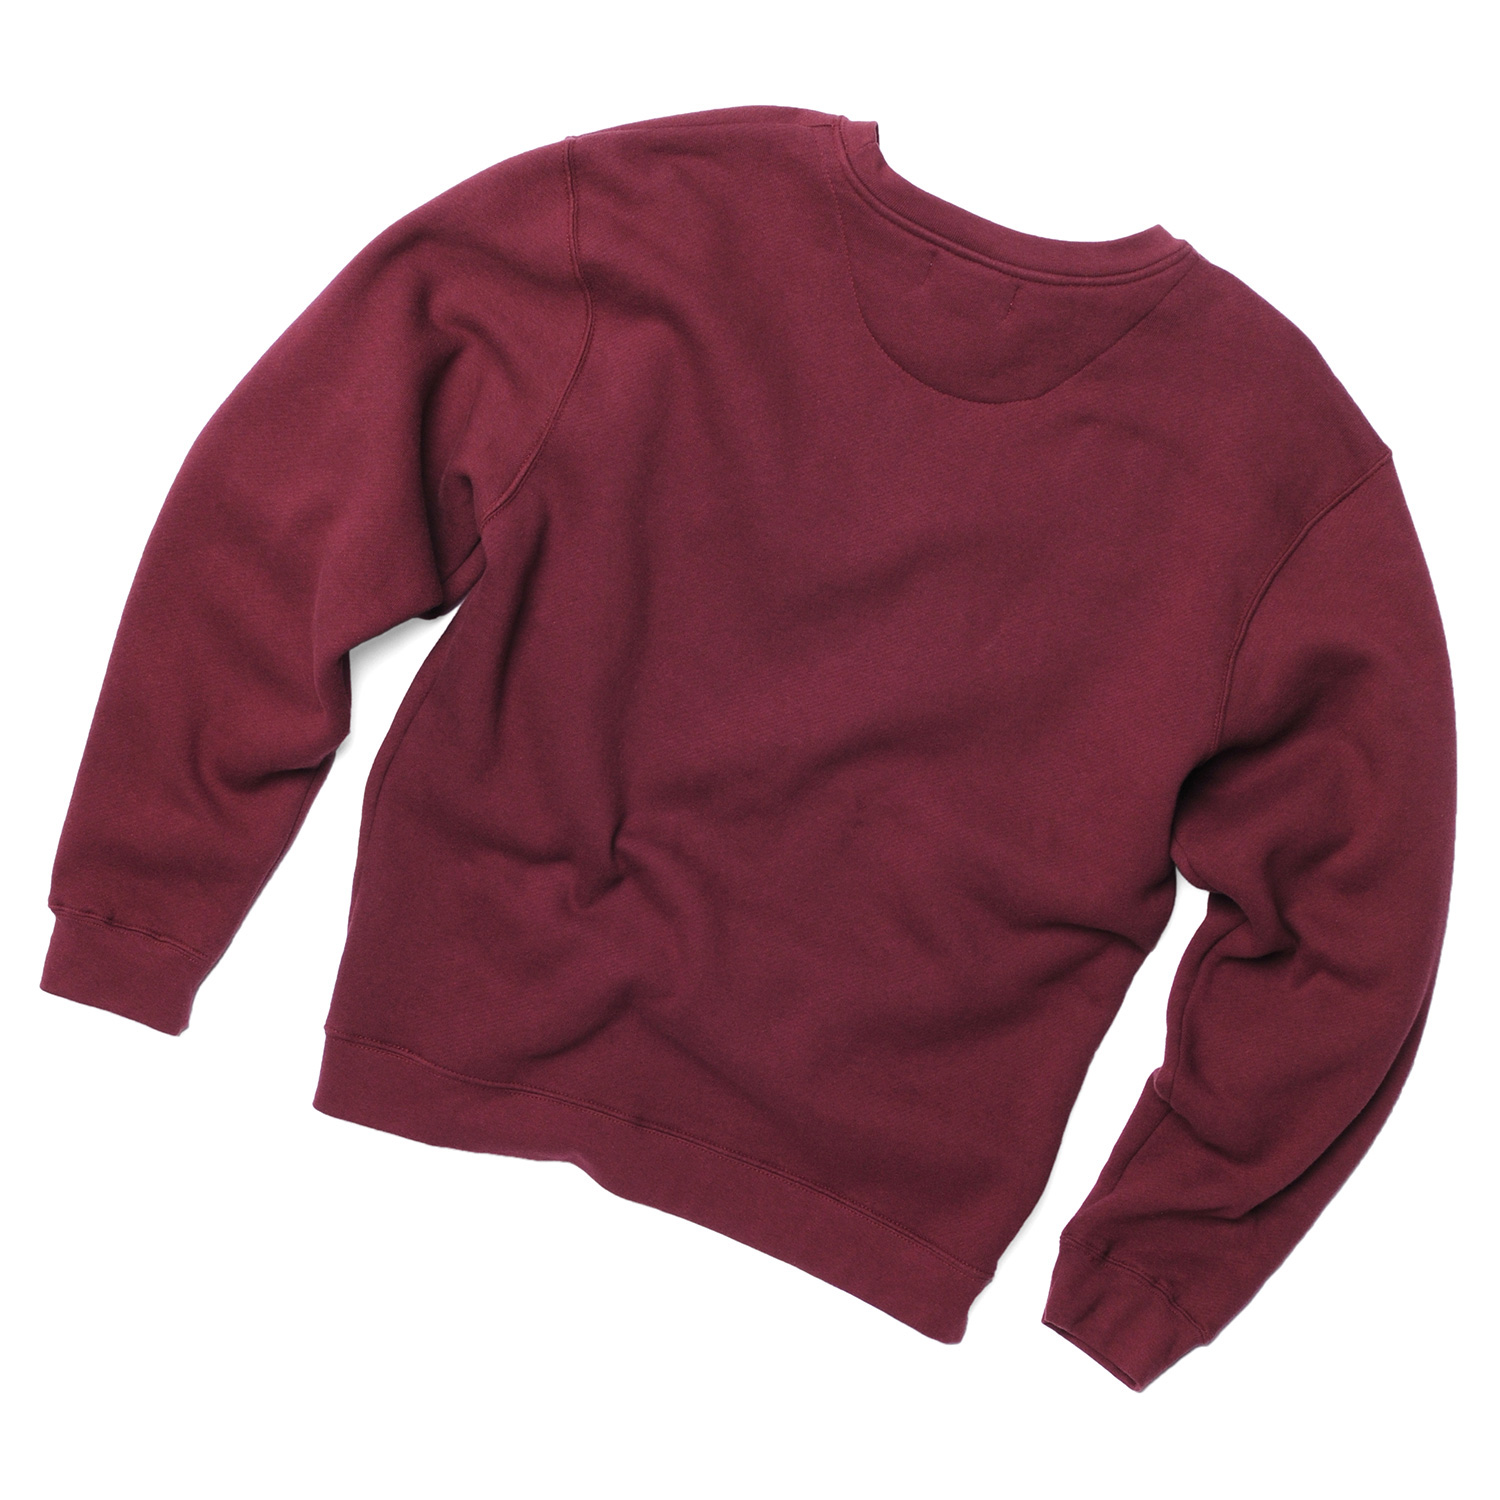 2-Heavyweight-Fleece-Crewneck-Sweater,-Maroon,-Back.jpg